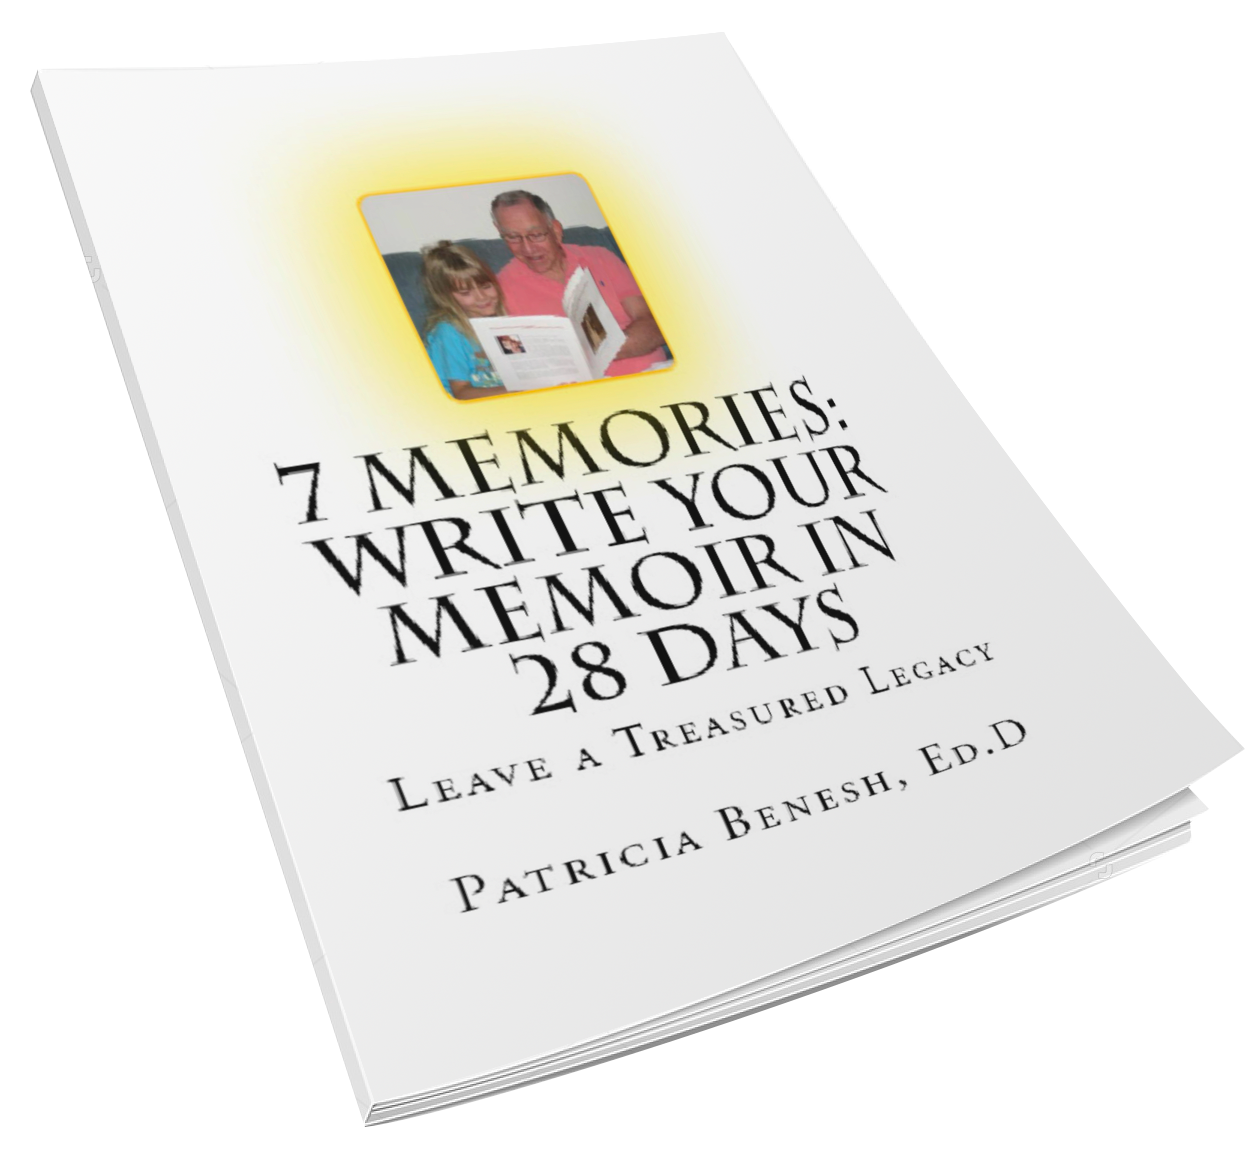 7memories books gifts and services for writing a memoir or click solutioingenieria Image collections